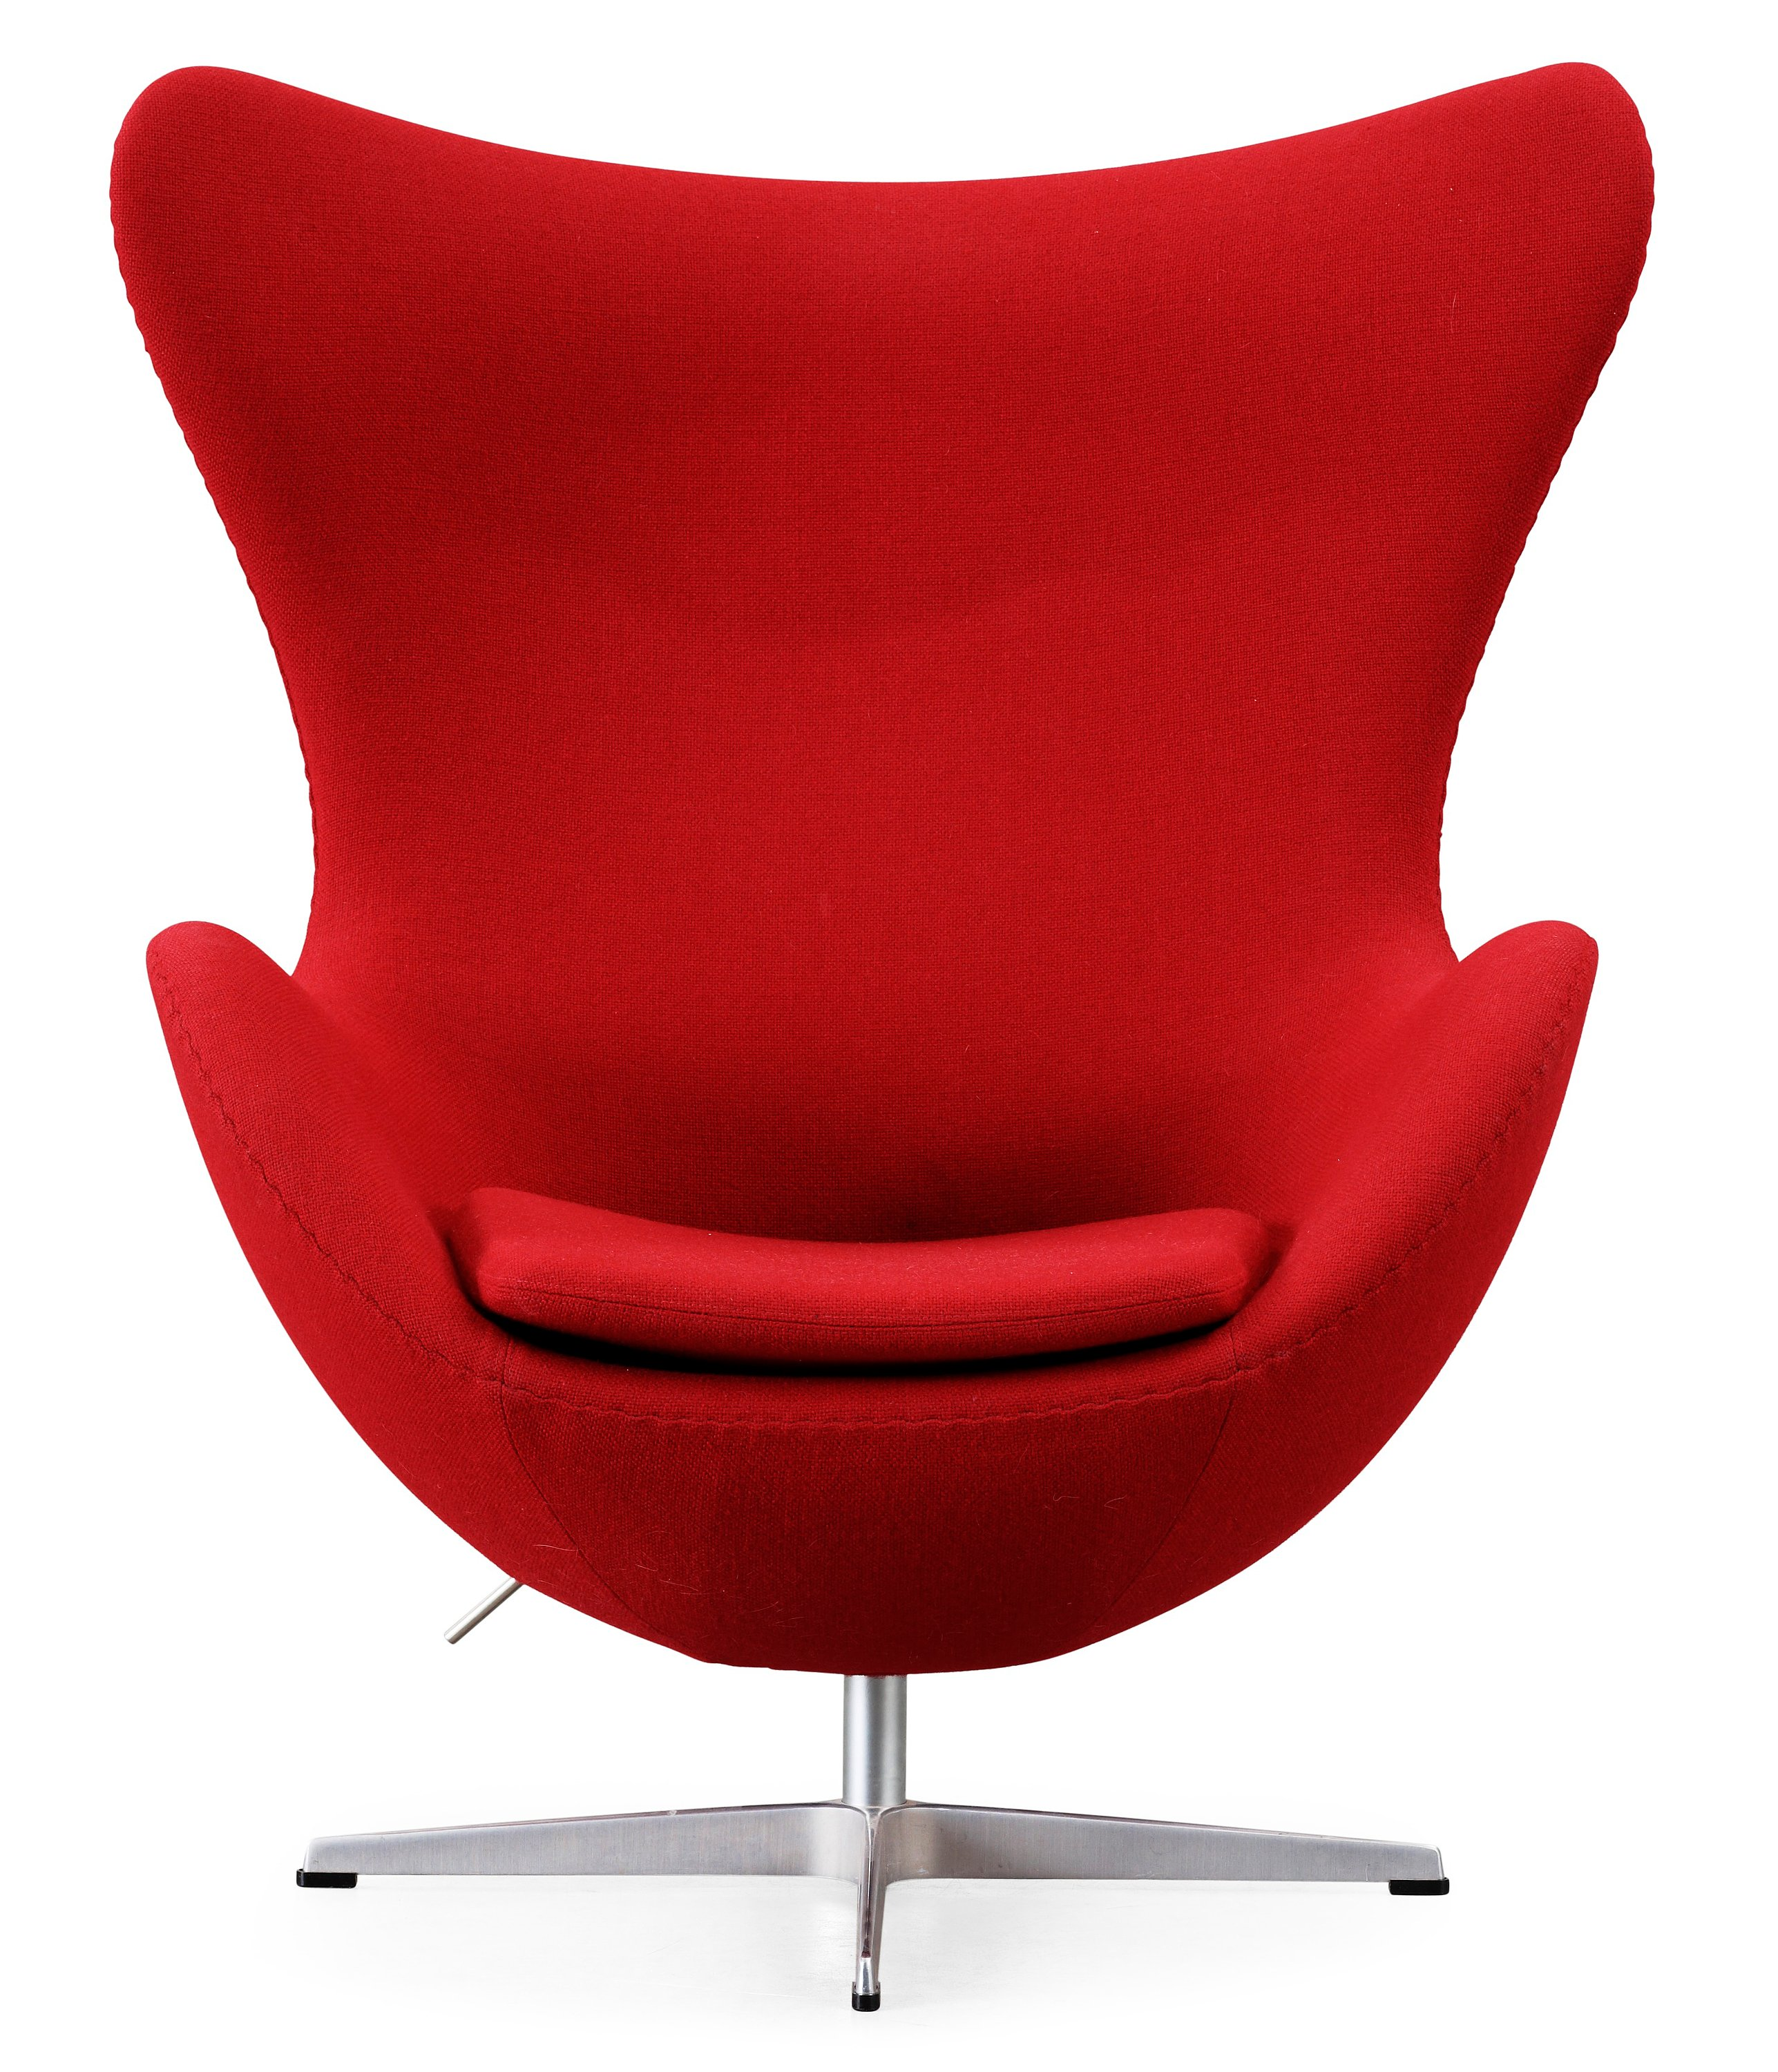 Arne Jacobsen Egg Chair Ebay Lovely Pictures Of New Arne Jacobsen Egg Chair Ideas